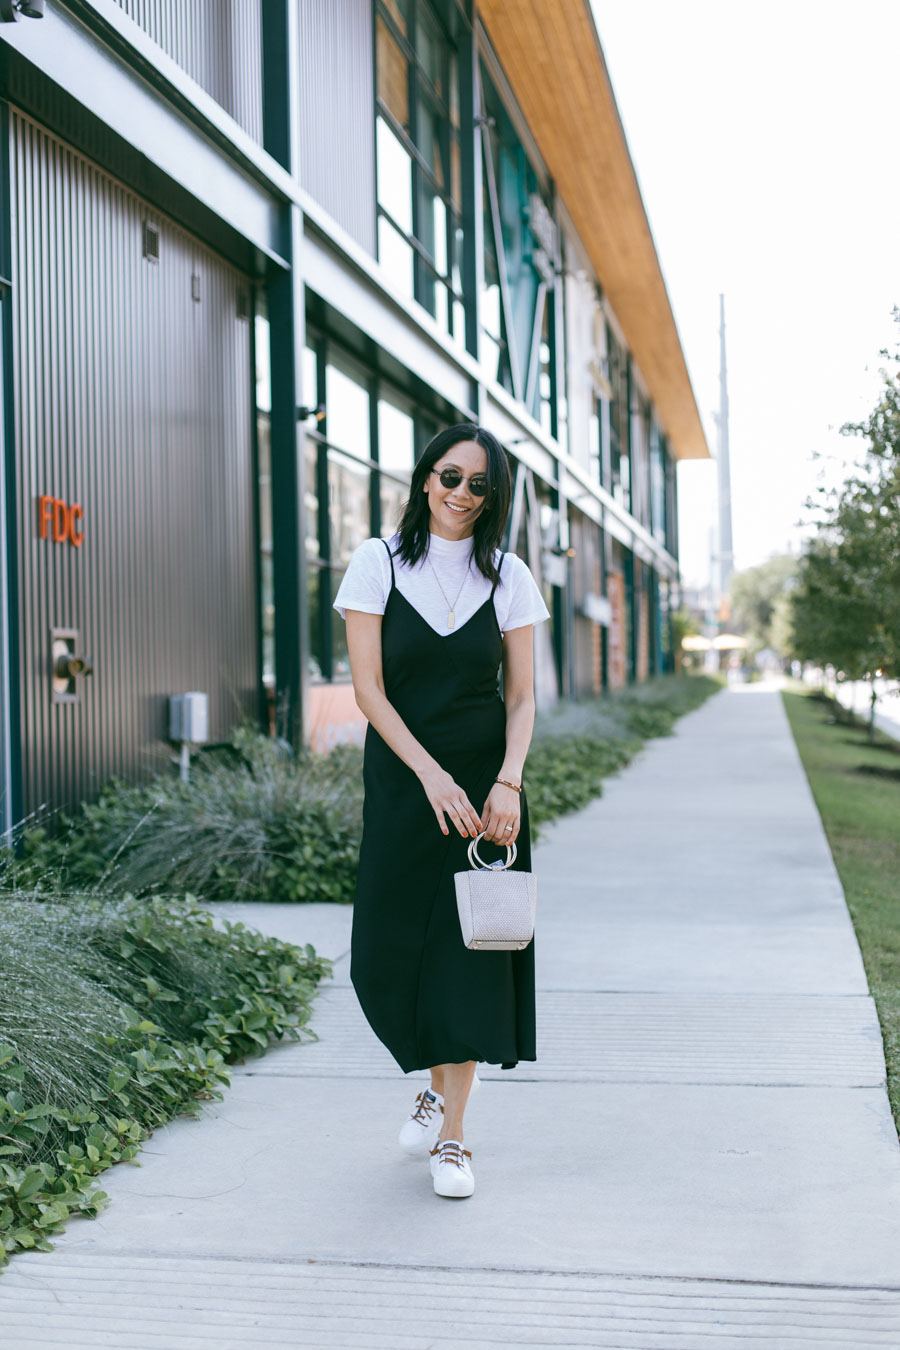 Lilly Beltran shares tips & tricks for being fashionable on a budget.